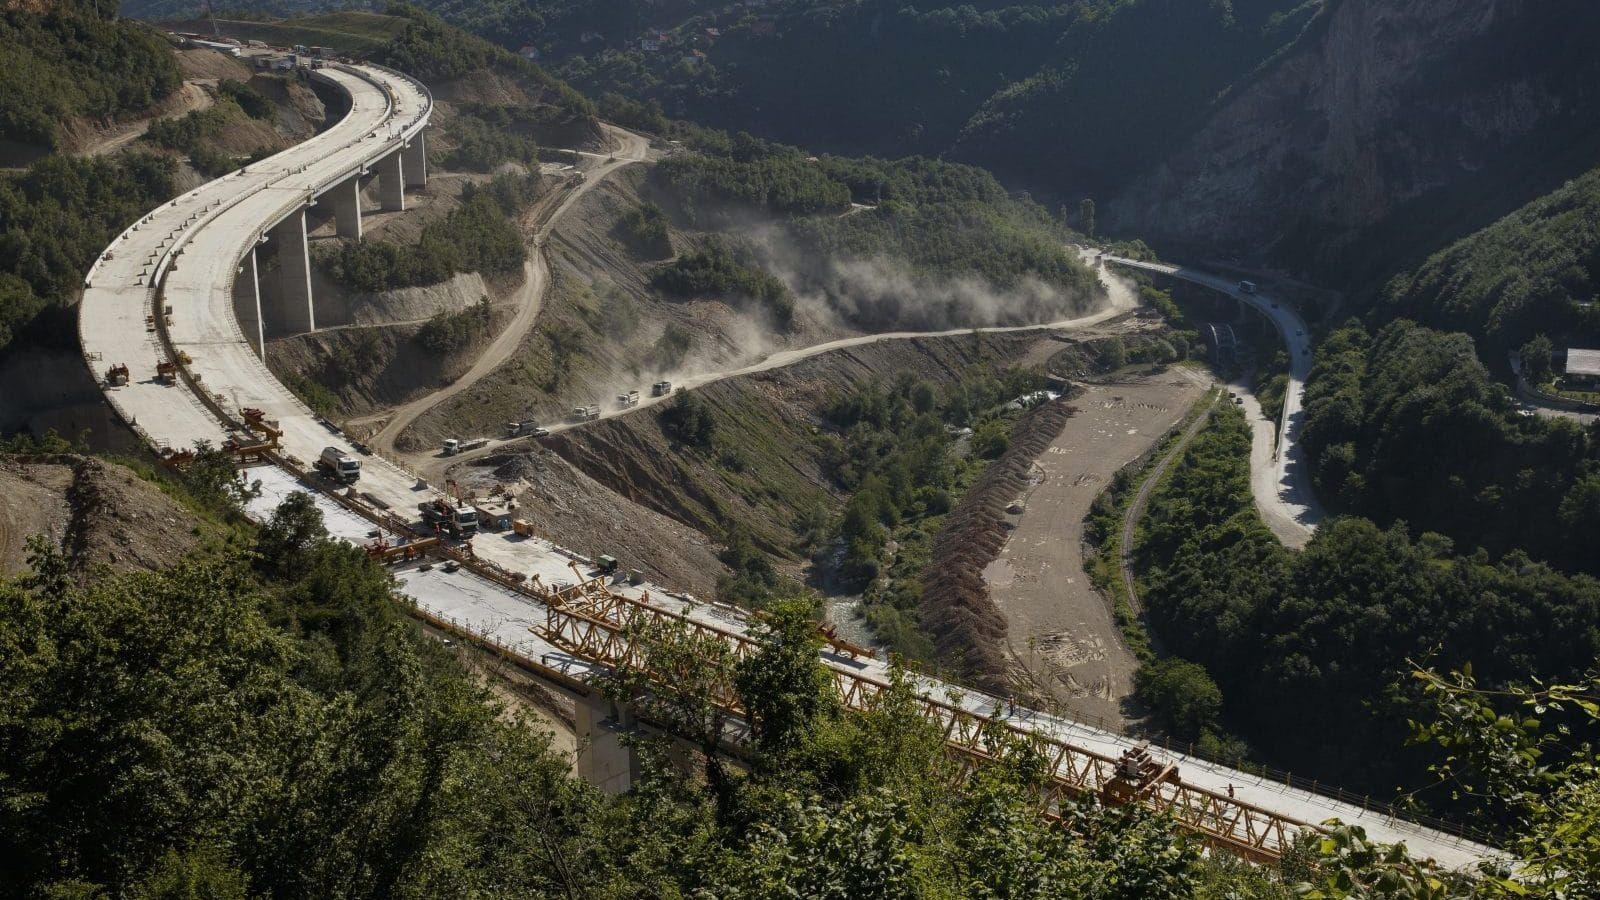 Impoverished Kosovo Pays Steep Price For New Highway | Balkan Insight